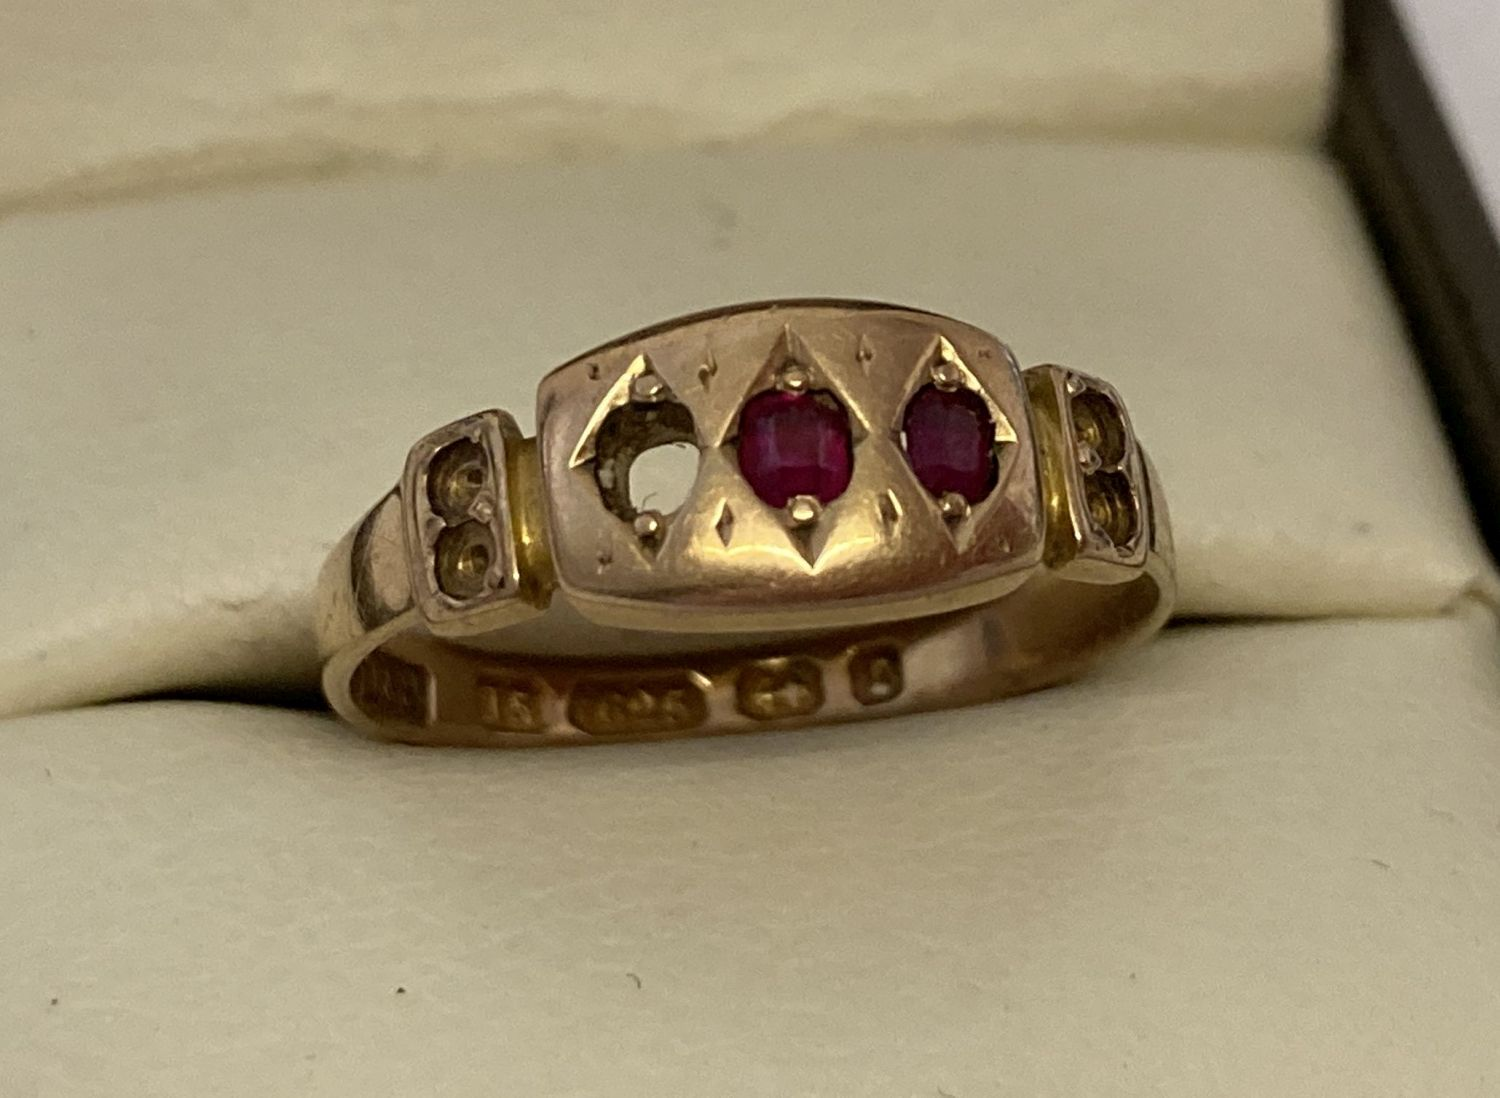 An antique 15ct gold and ruby dress ring, for scrap or repair.